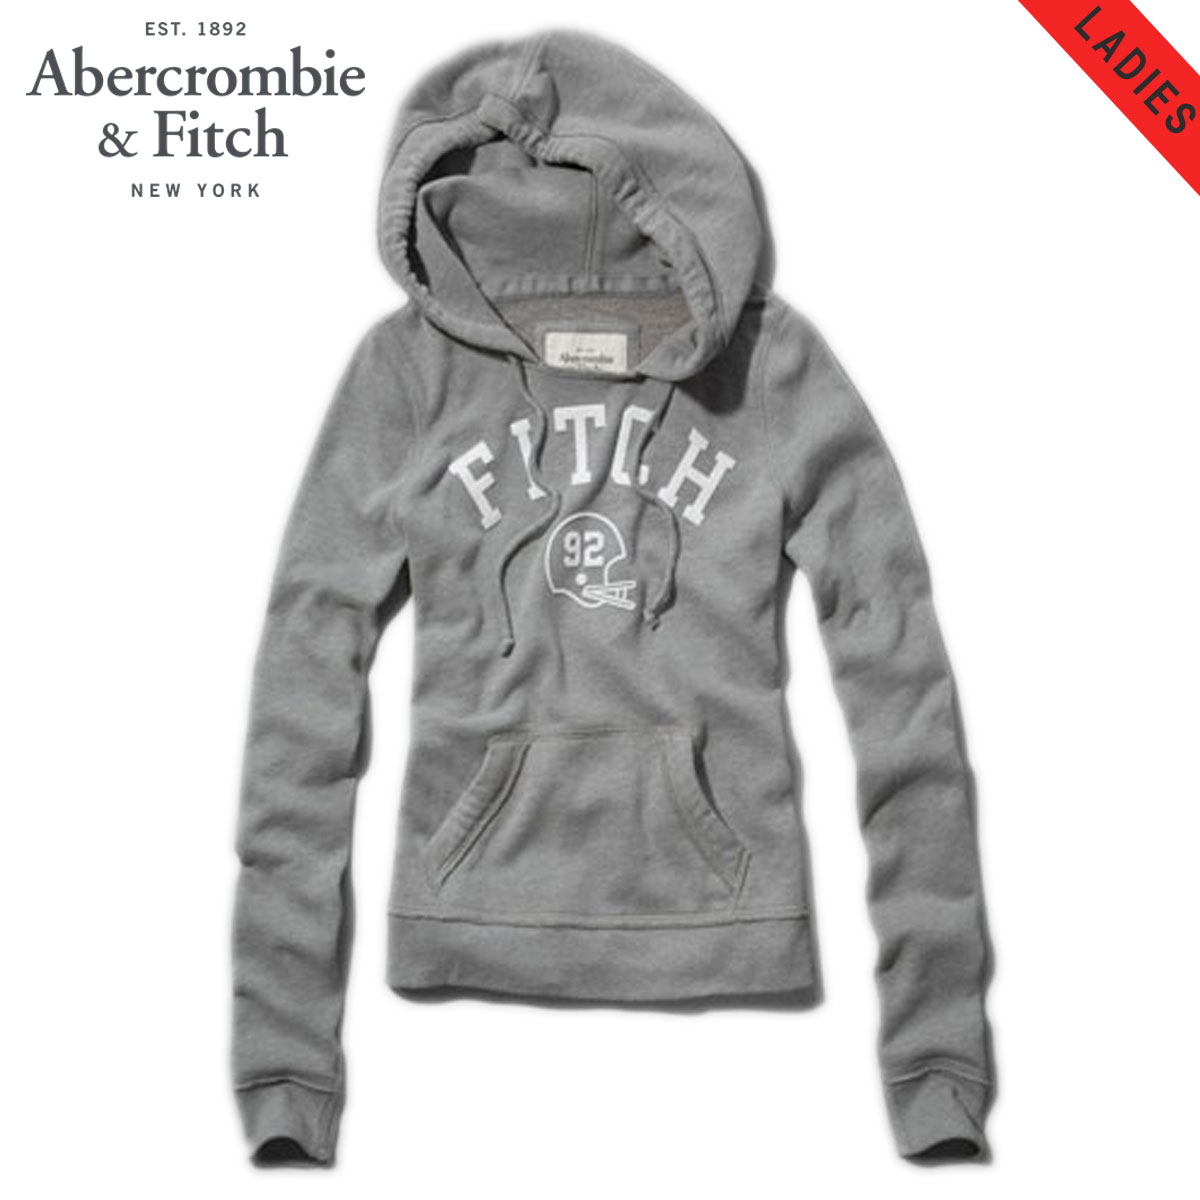 【15%OFFセール 1/19 10:00〜1/22 9:59】 アバクロ Abercrombie&Fitch 正規品 レディース パーカー JANA HOODIE 152-514-0224-012